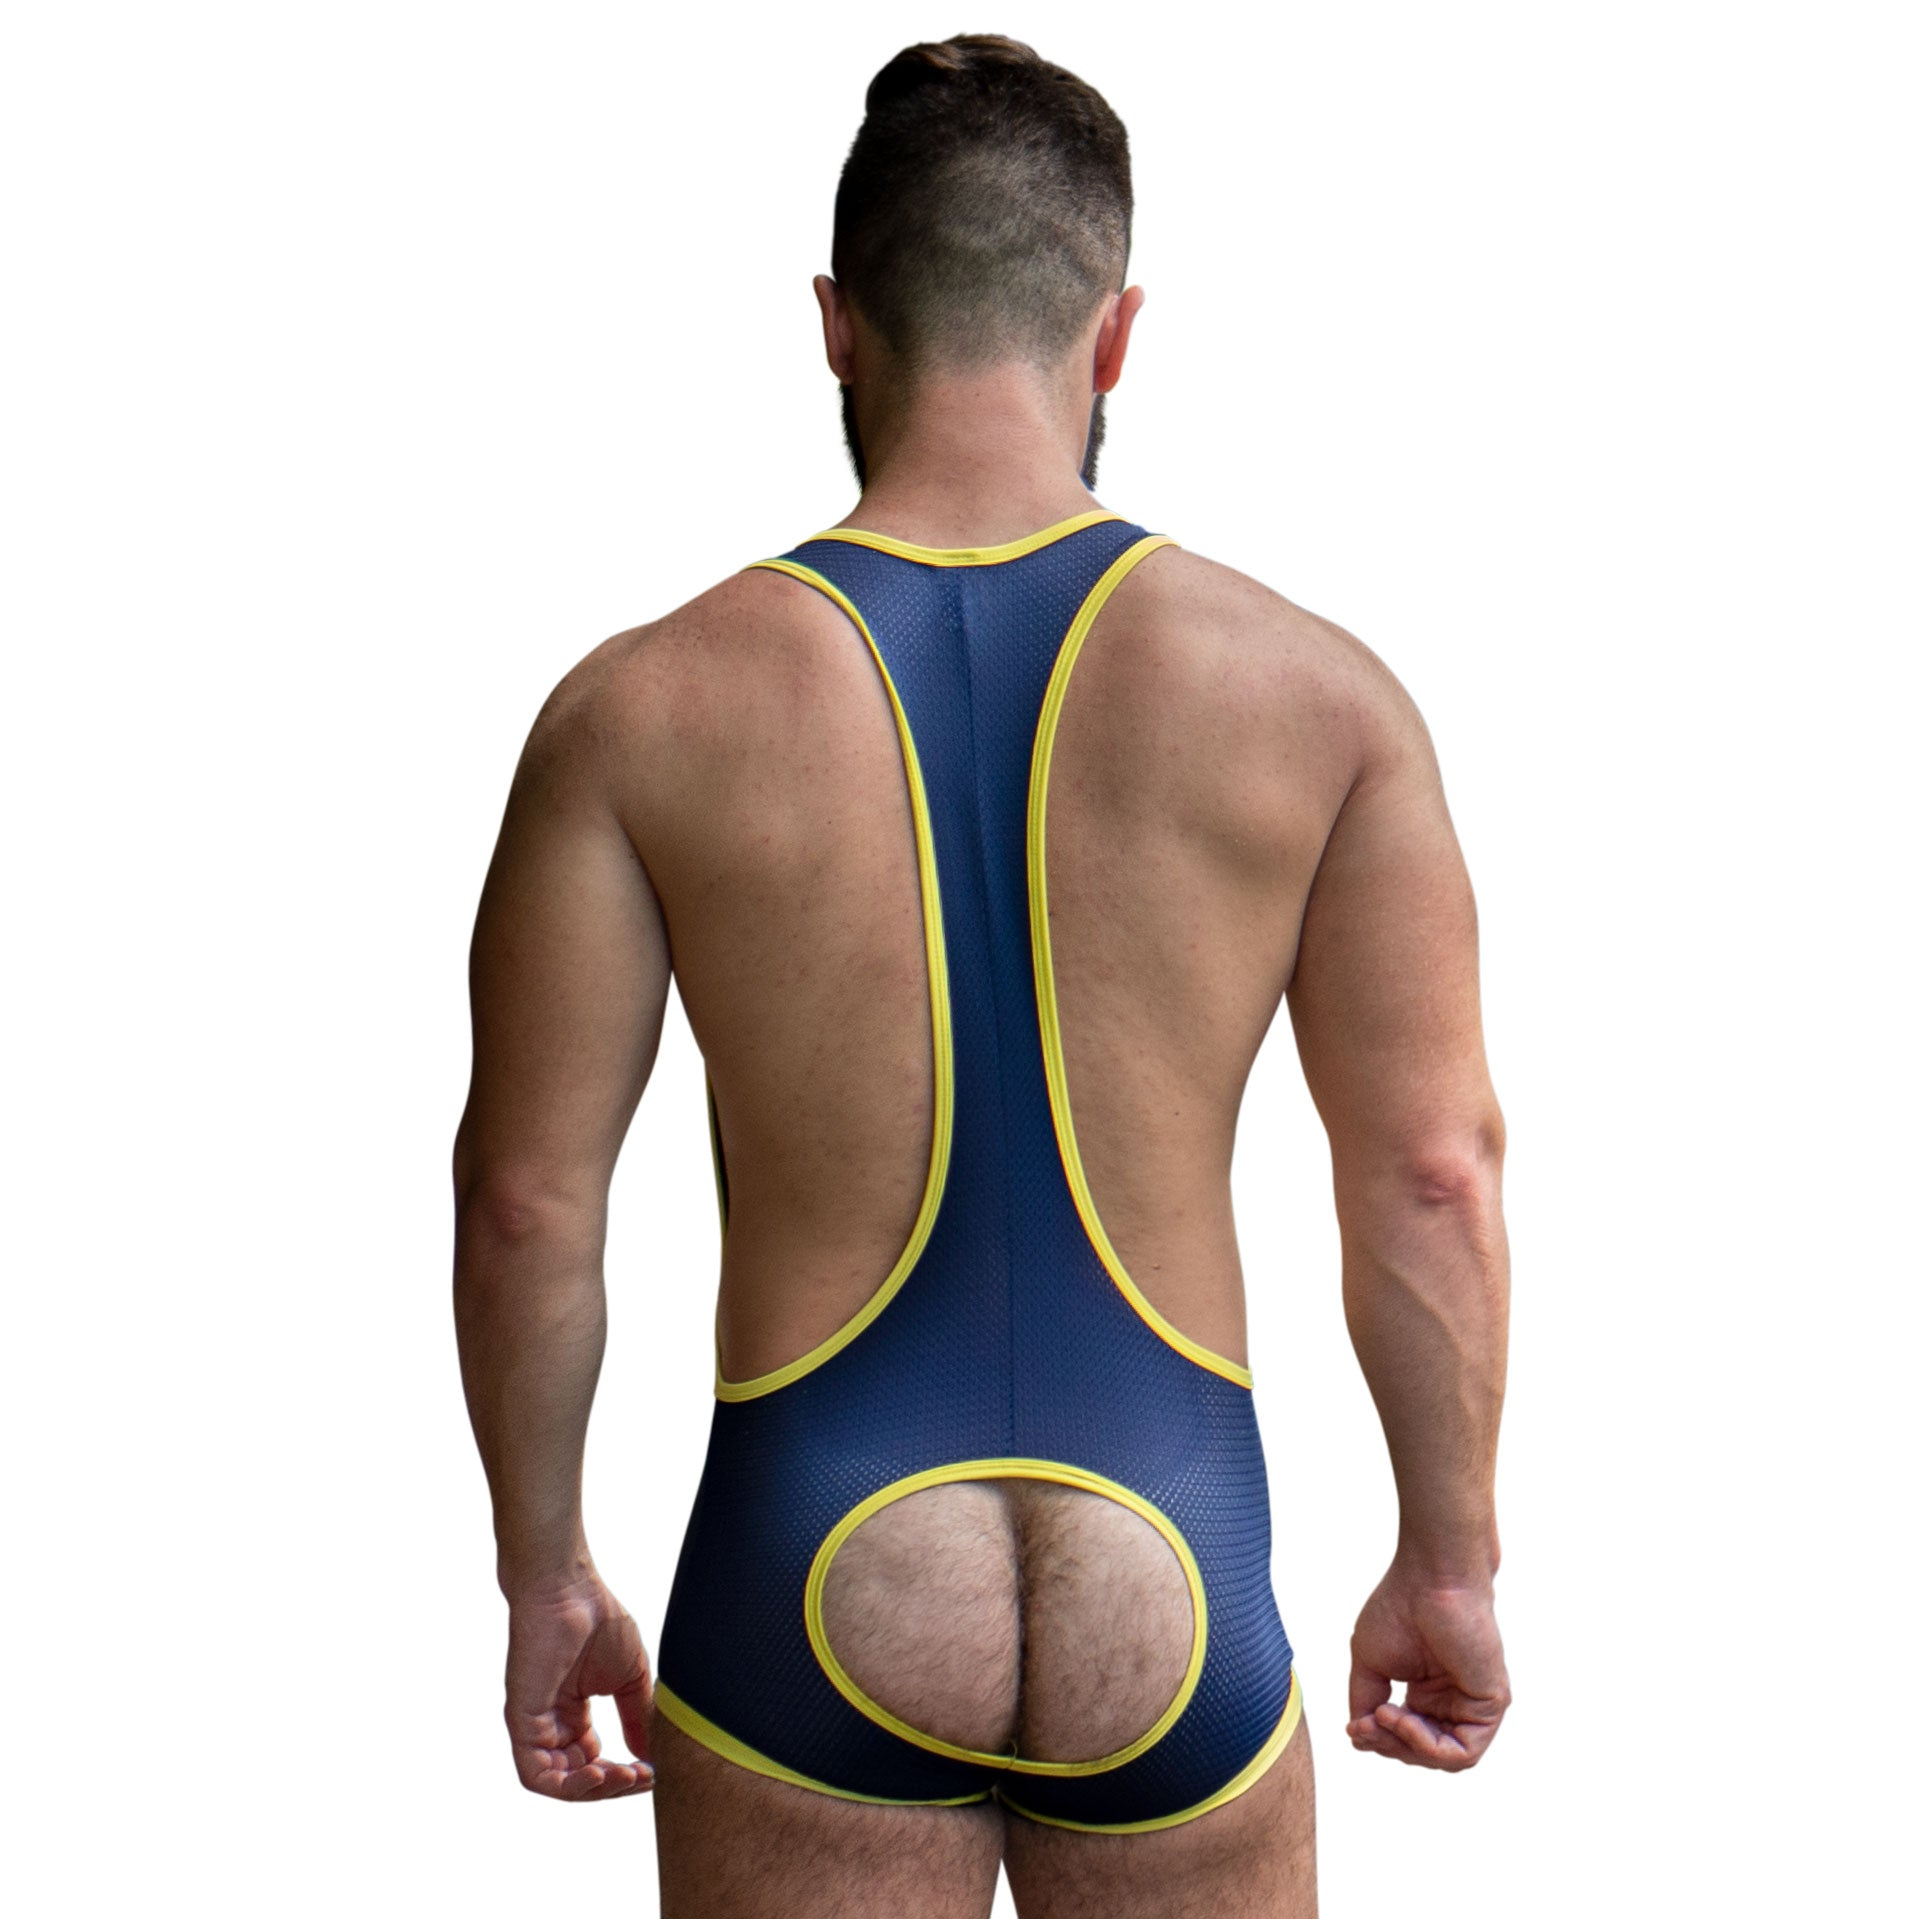 Mesh Singlet - Navy/Yellow - Assless